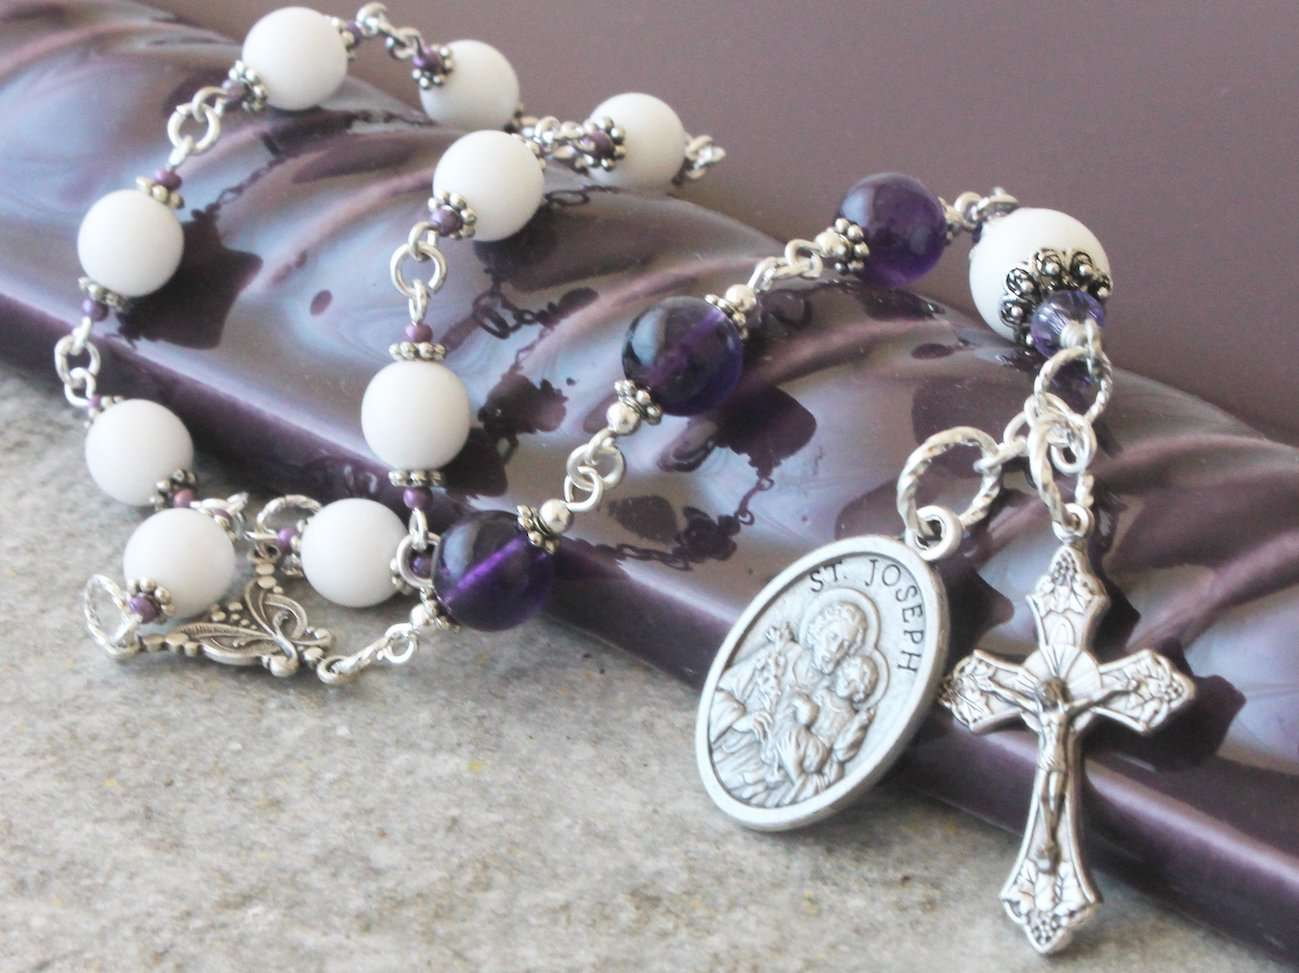 How to pray the Rosary of St Joseph